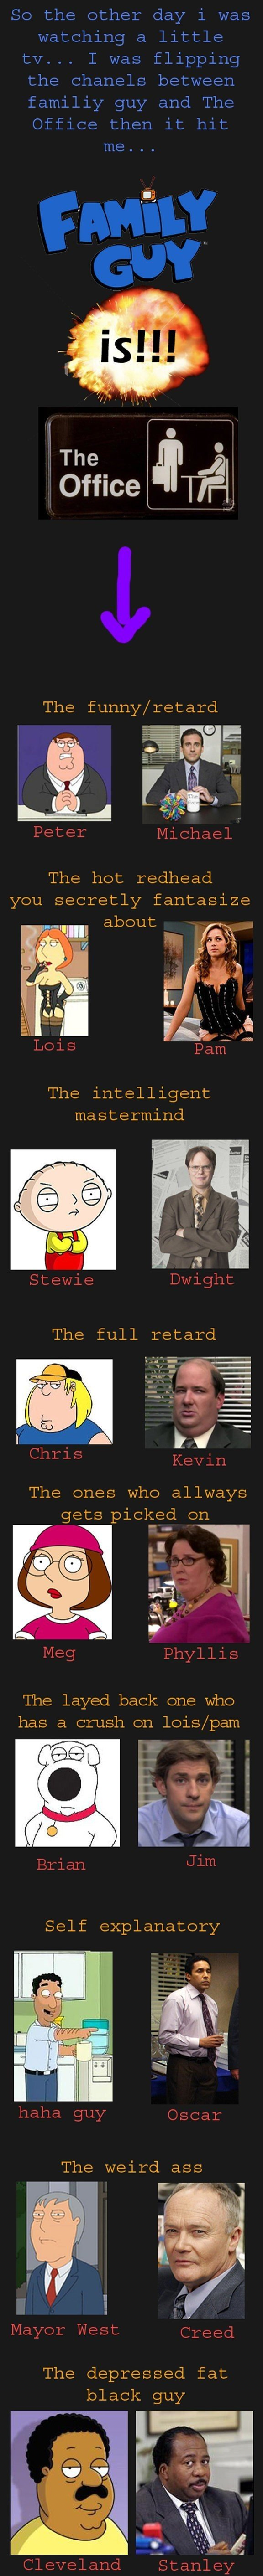 Family Guy vs. The Office. haven't seen it on here sorry if repost not a OC. The funny/ retard The hot redhead you secretly fantasize about The intelligent mast